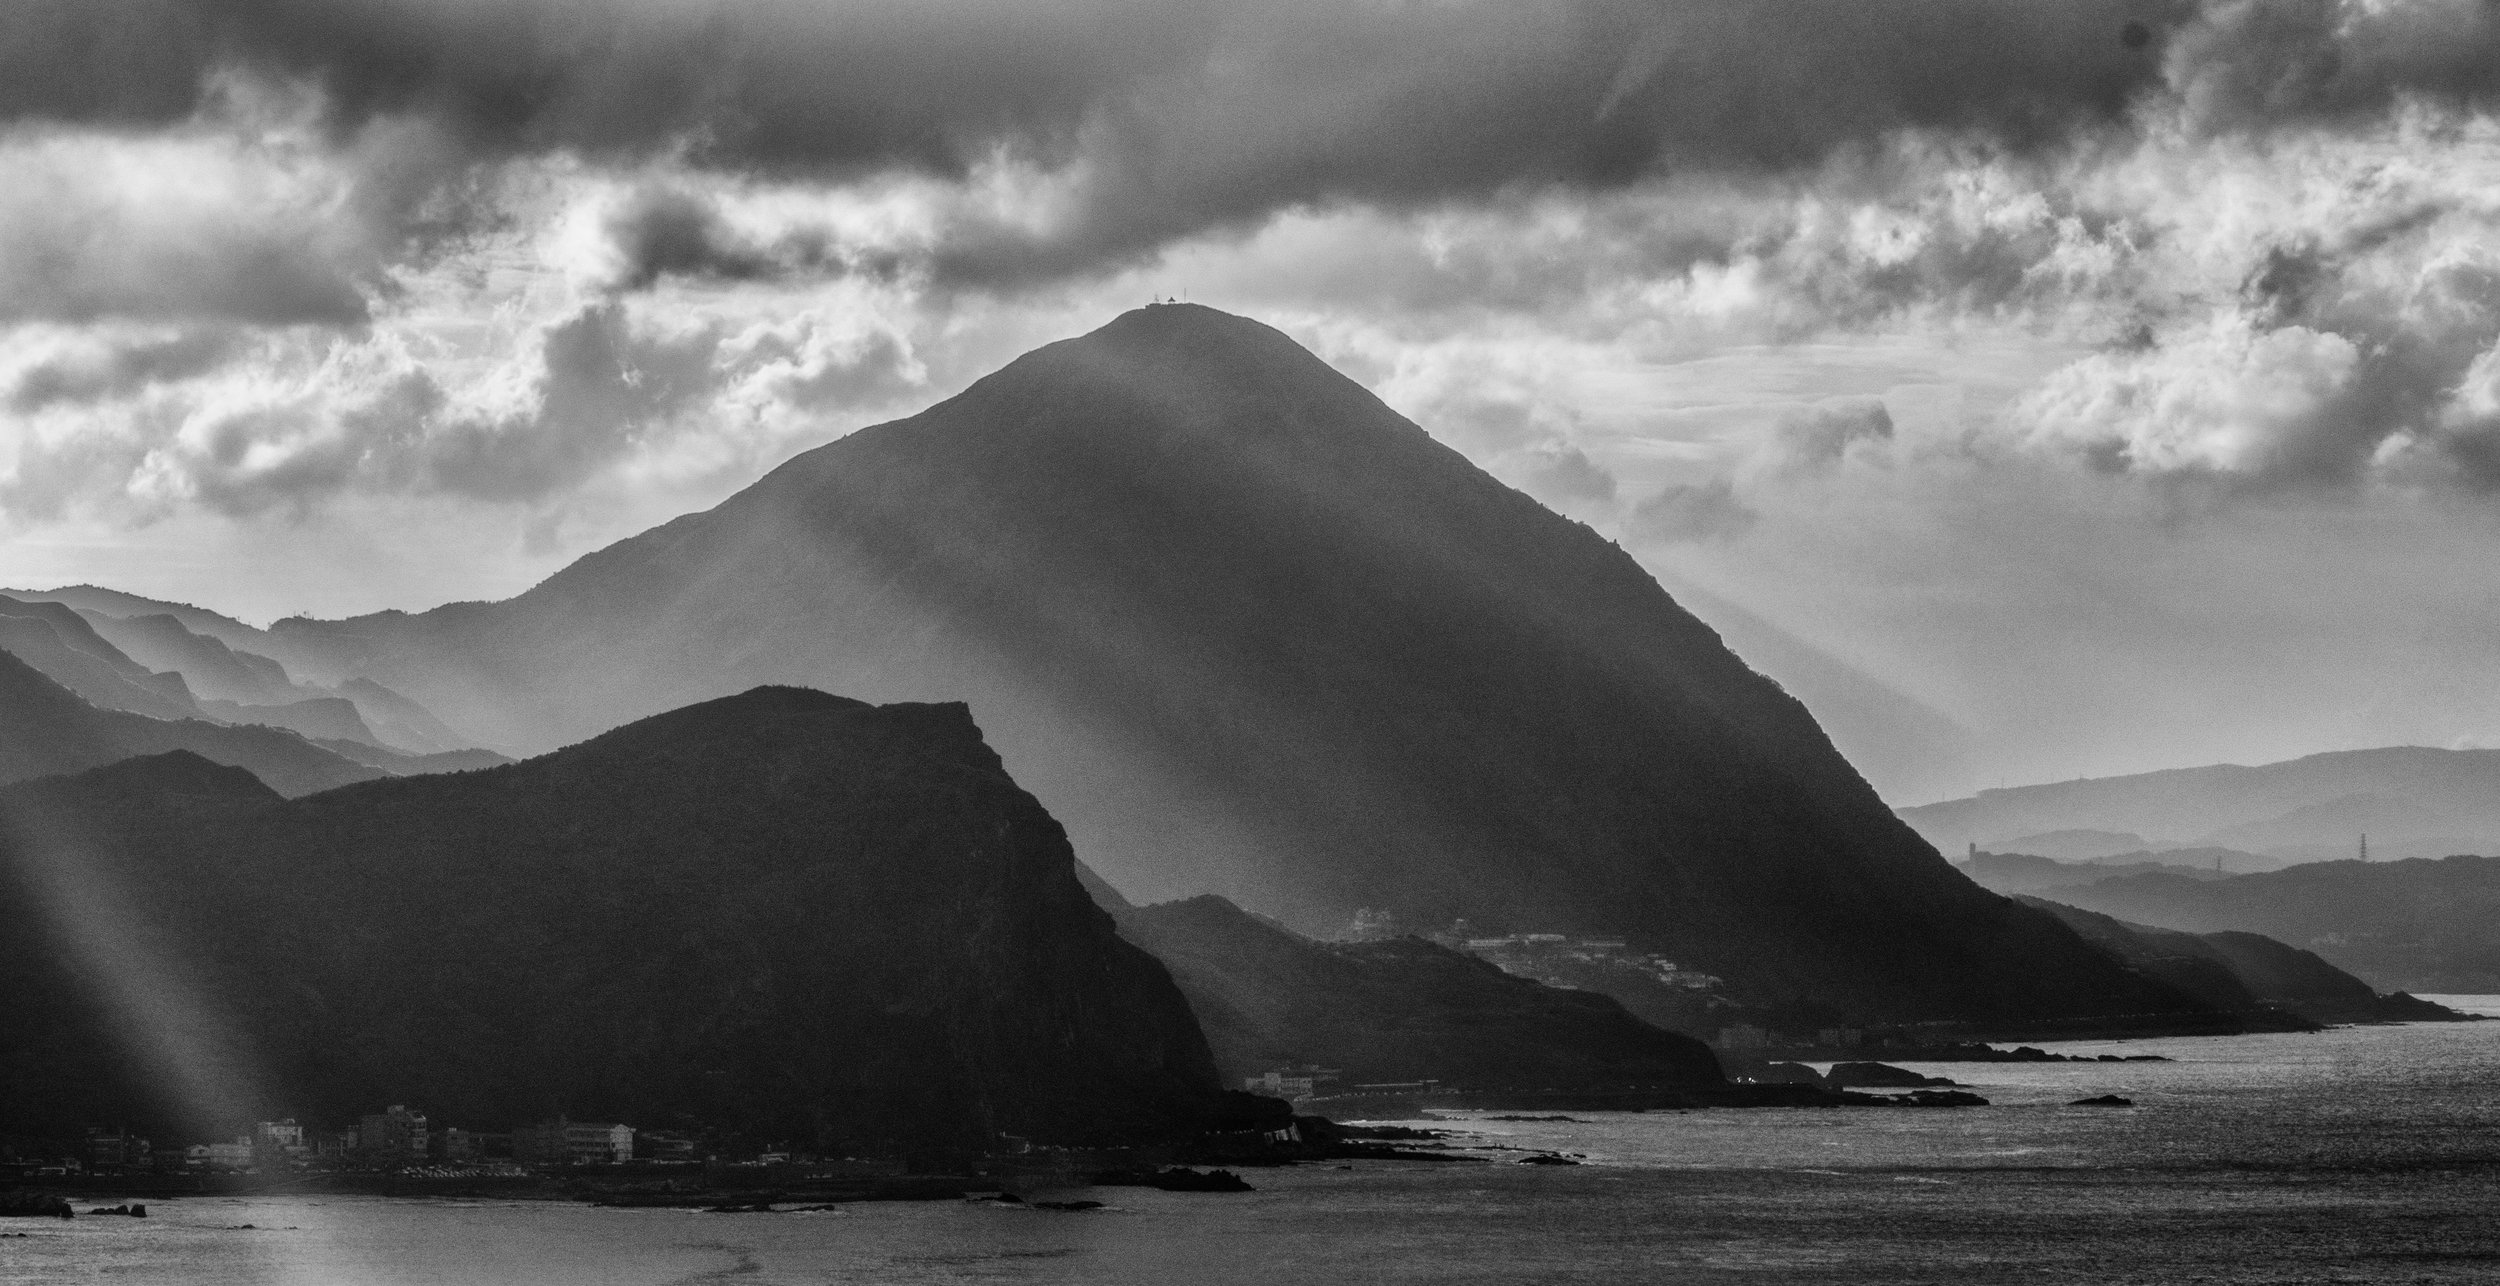 My favorite BnW photo I've taken to this day, Mt, Keelung. f22, ISO 200, 1/40, 150mm